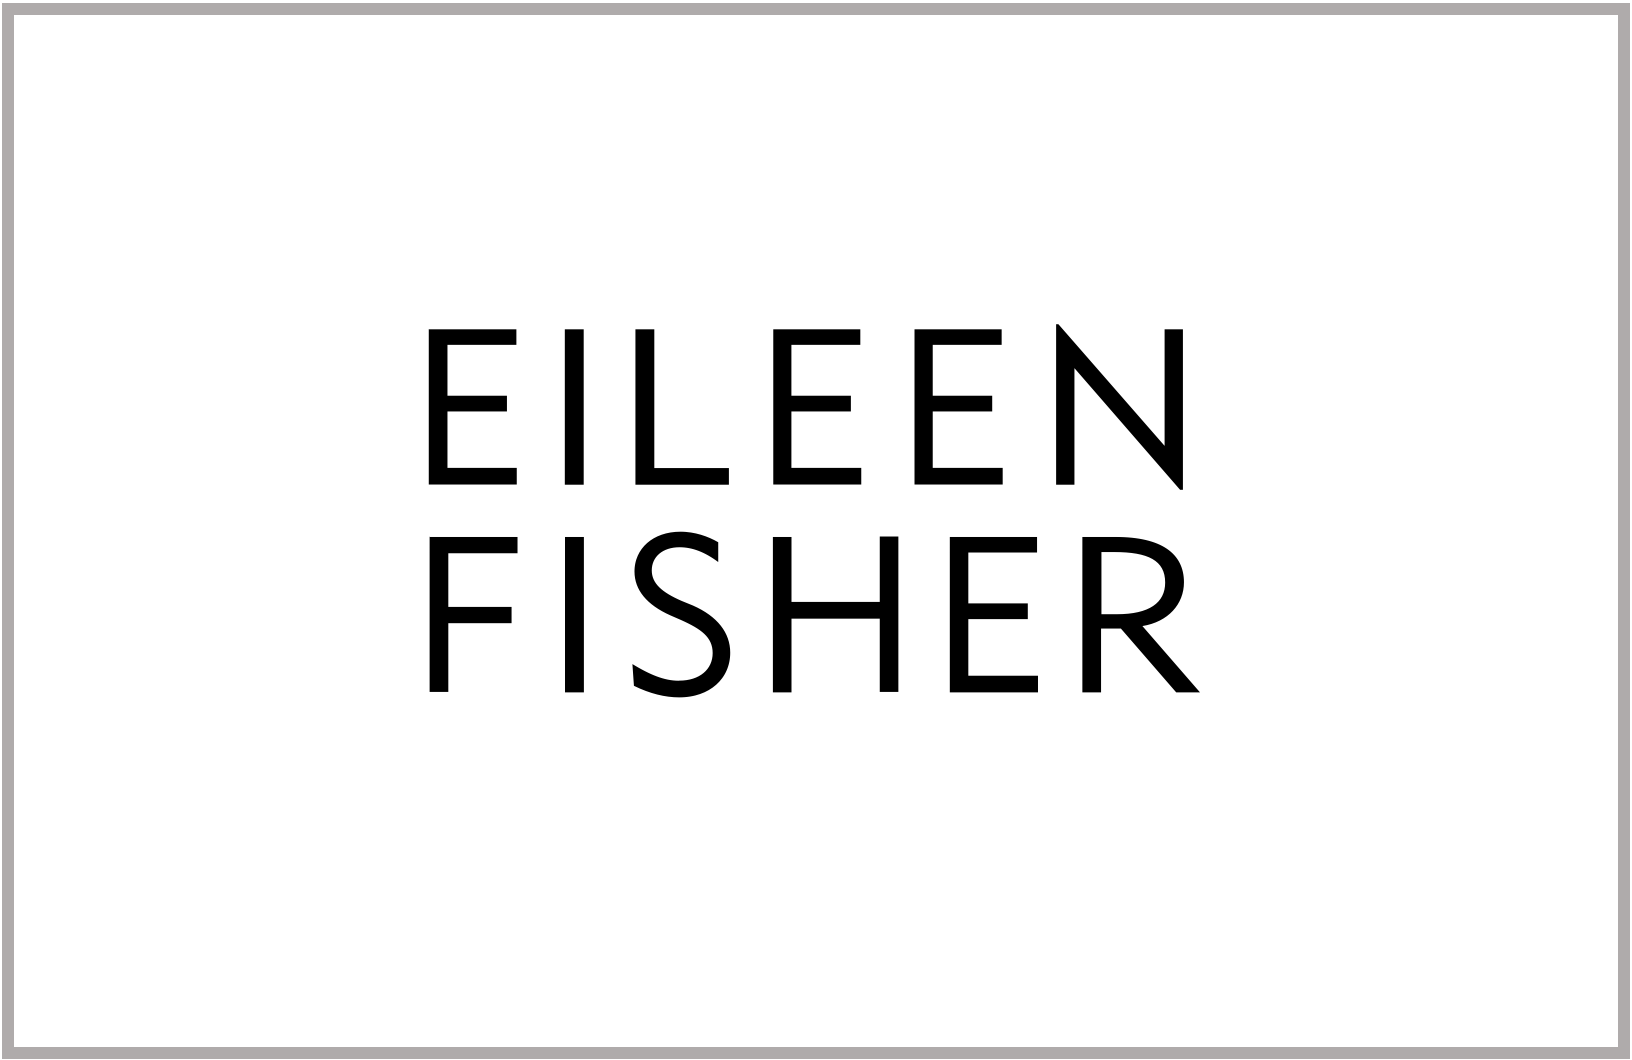 Eileen Fisher - Gallery Block.png